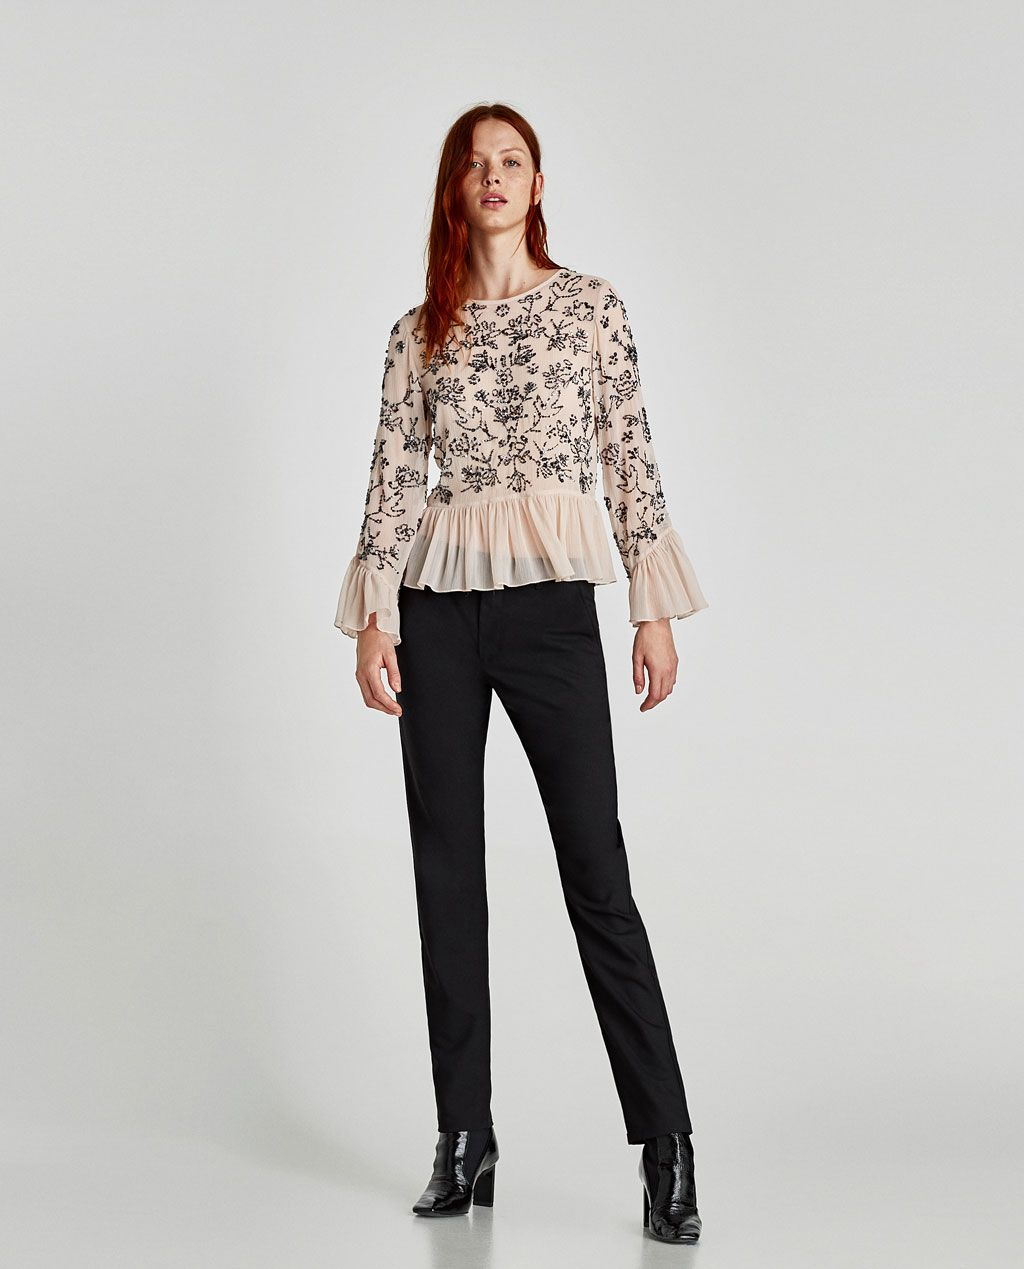 7651f494 Image 1 of EMBROIDERED TOP WITH BACK BUTTONS from Zara | Band Style ...